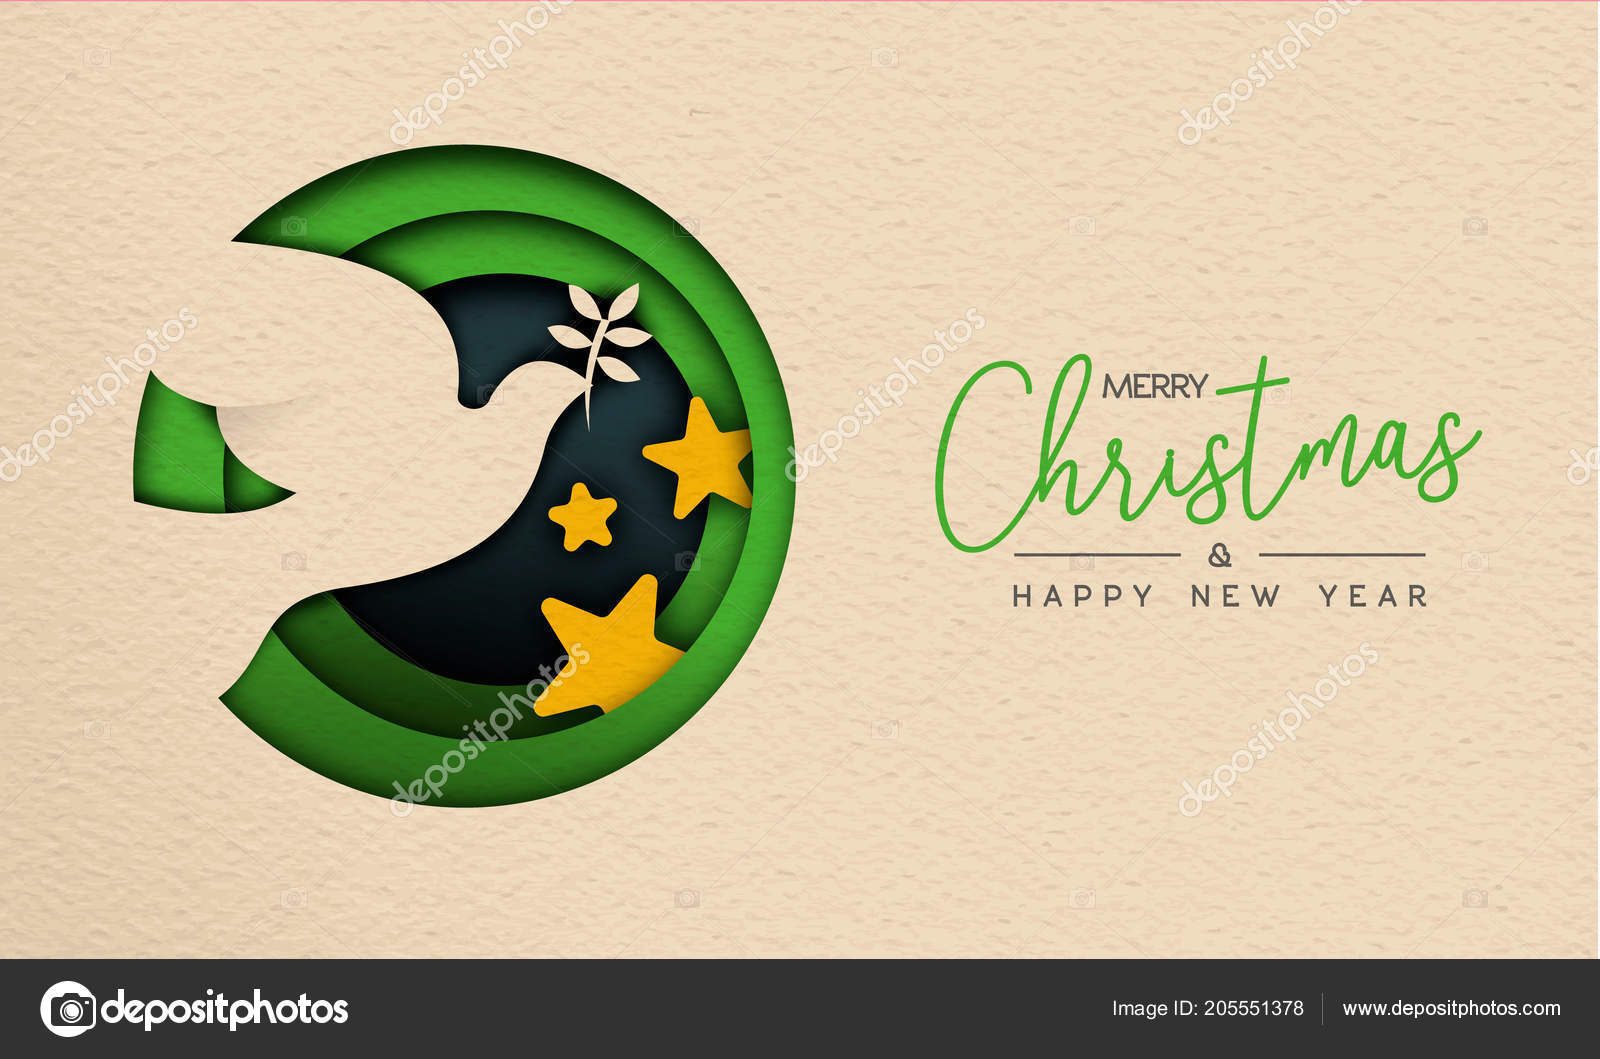 merry christmas happy new year web banner illustration paper cut stock vector